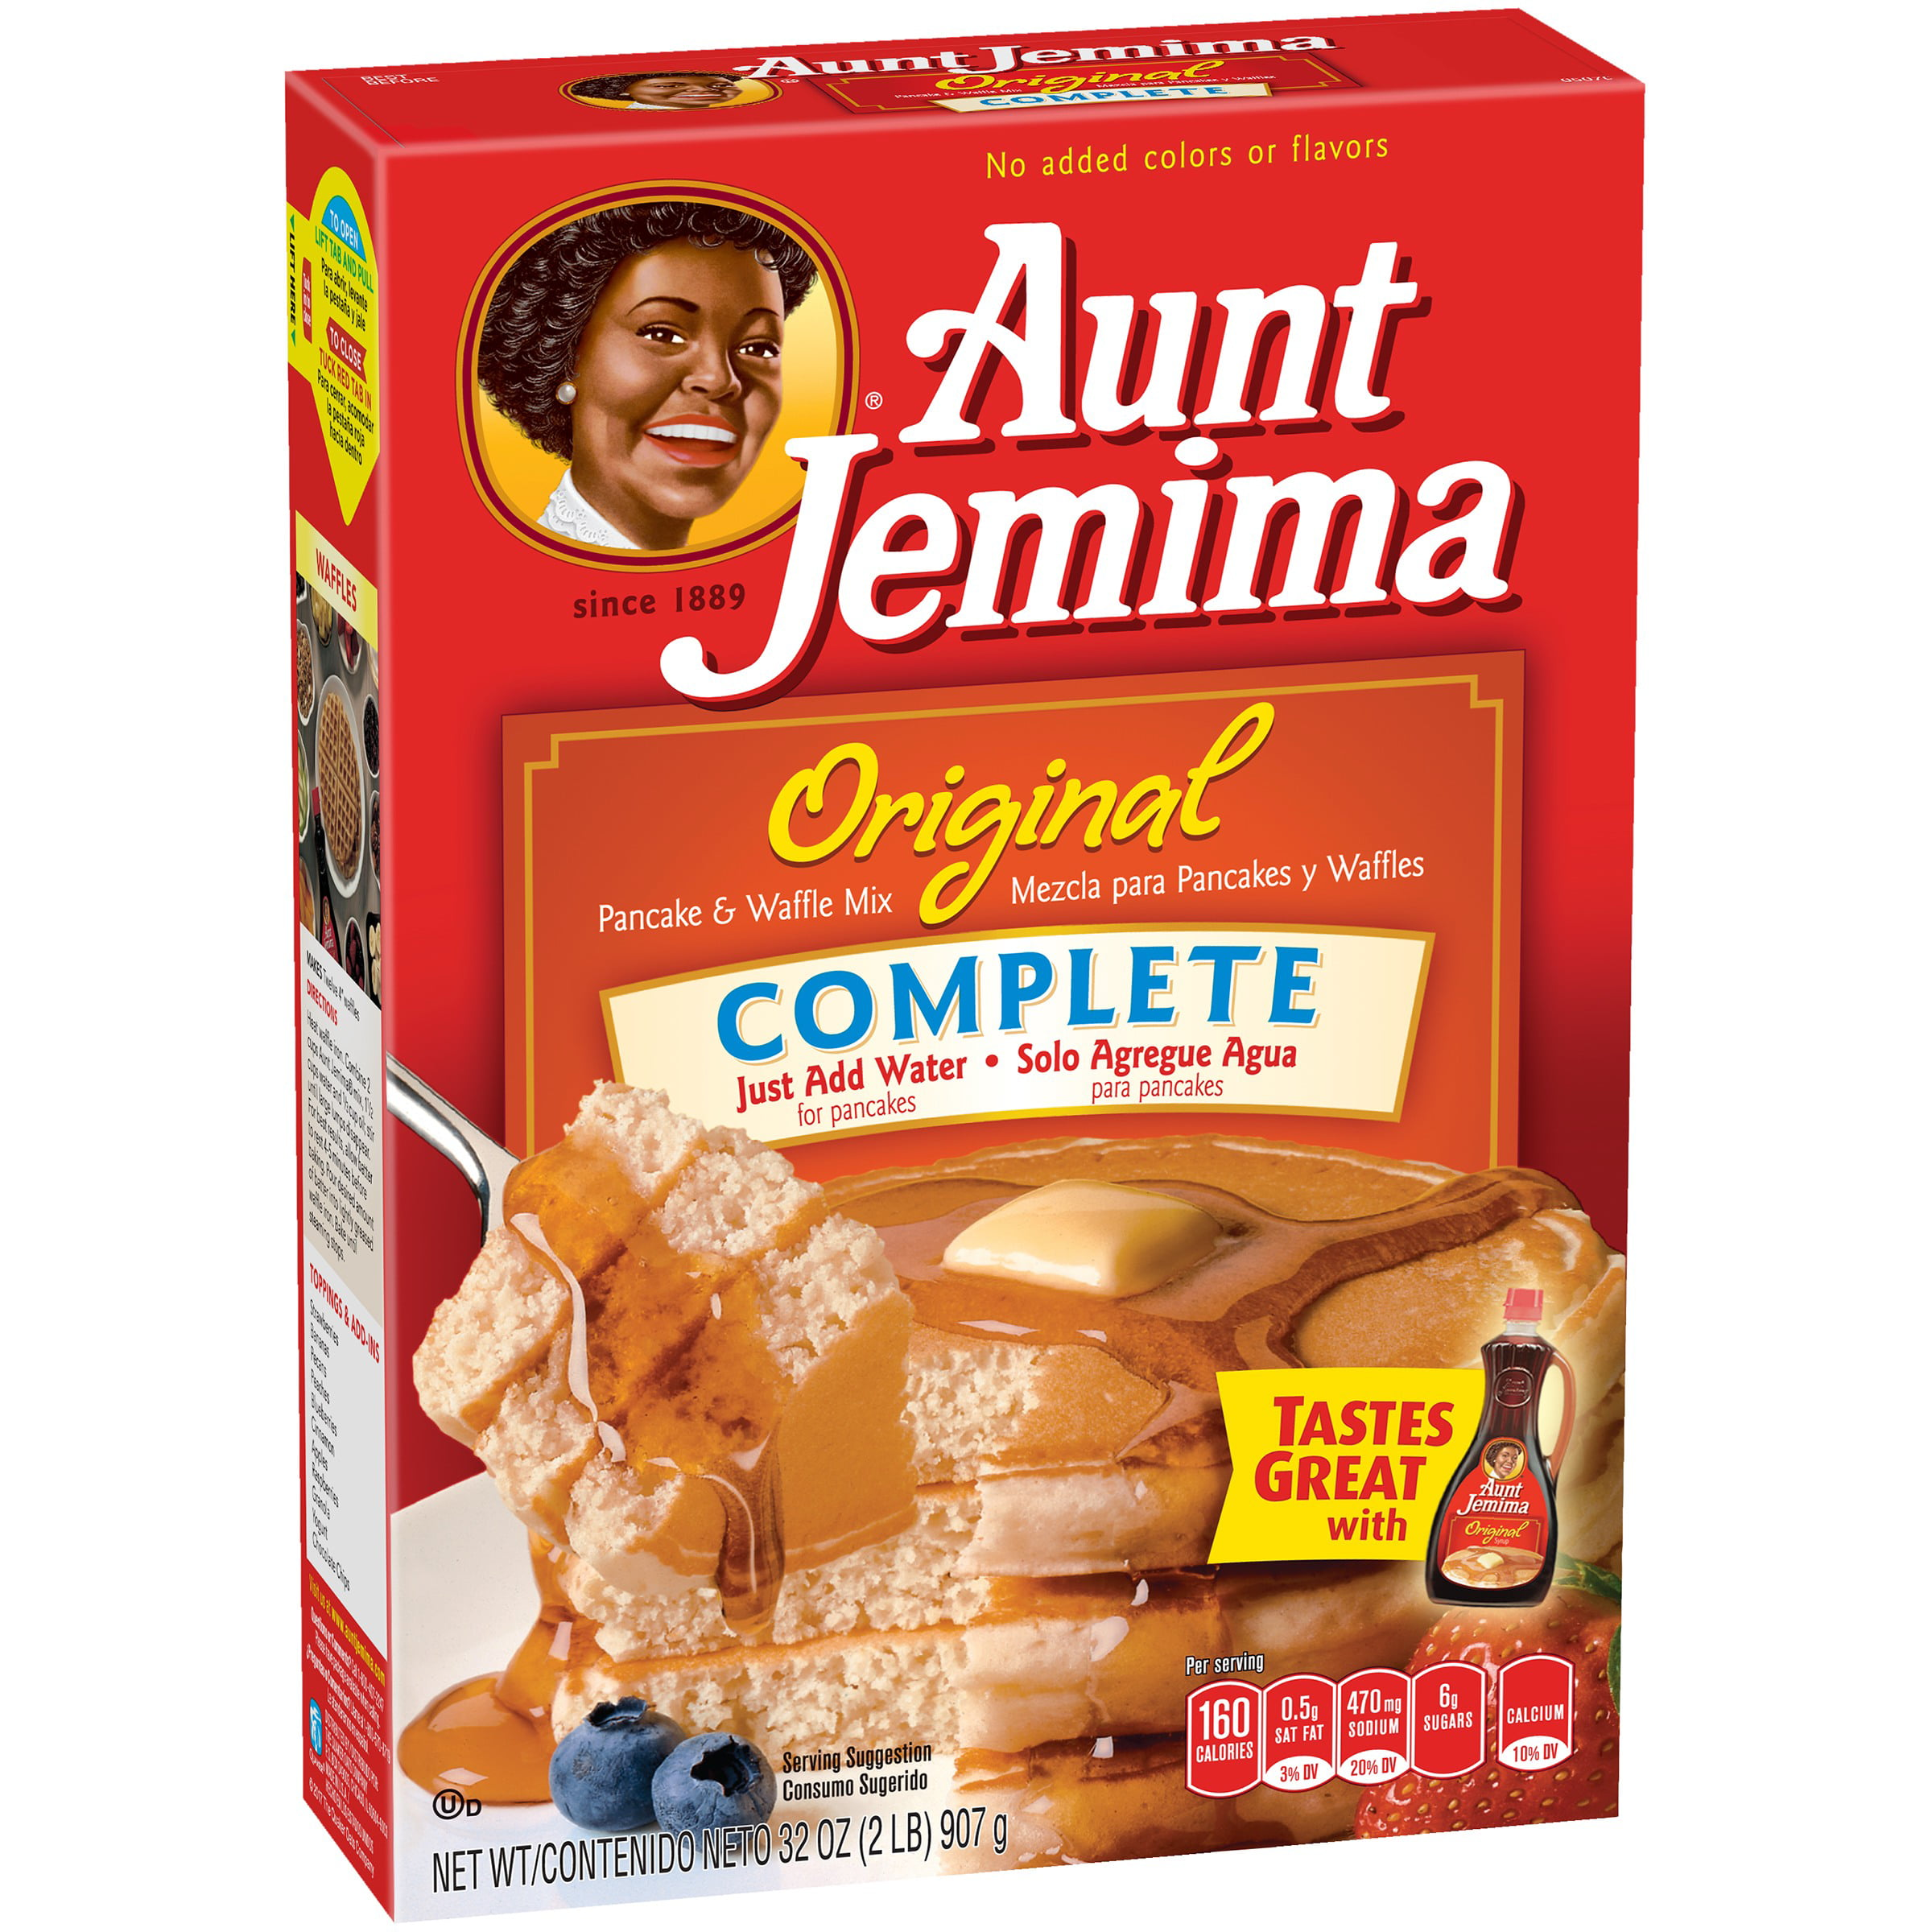 Aunt Jemima Original Complete Pancake & Waffle Mix 32 oz. Box by The Quaker Oats Company